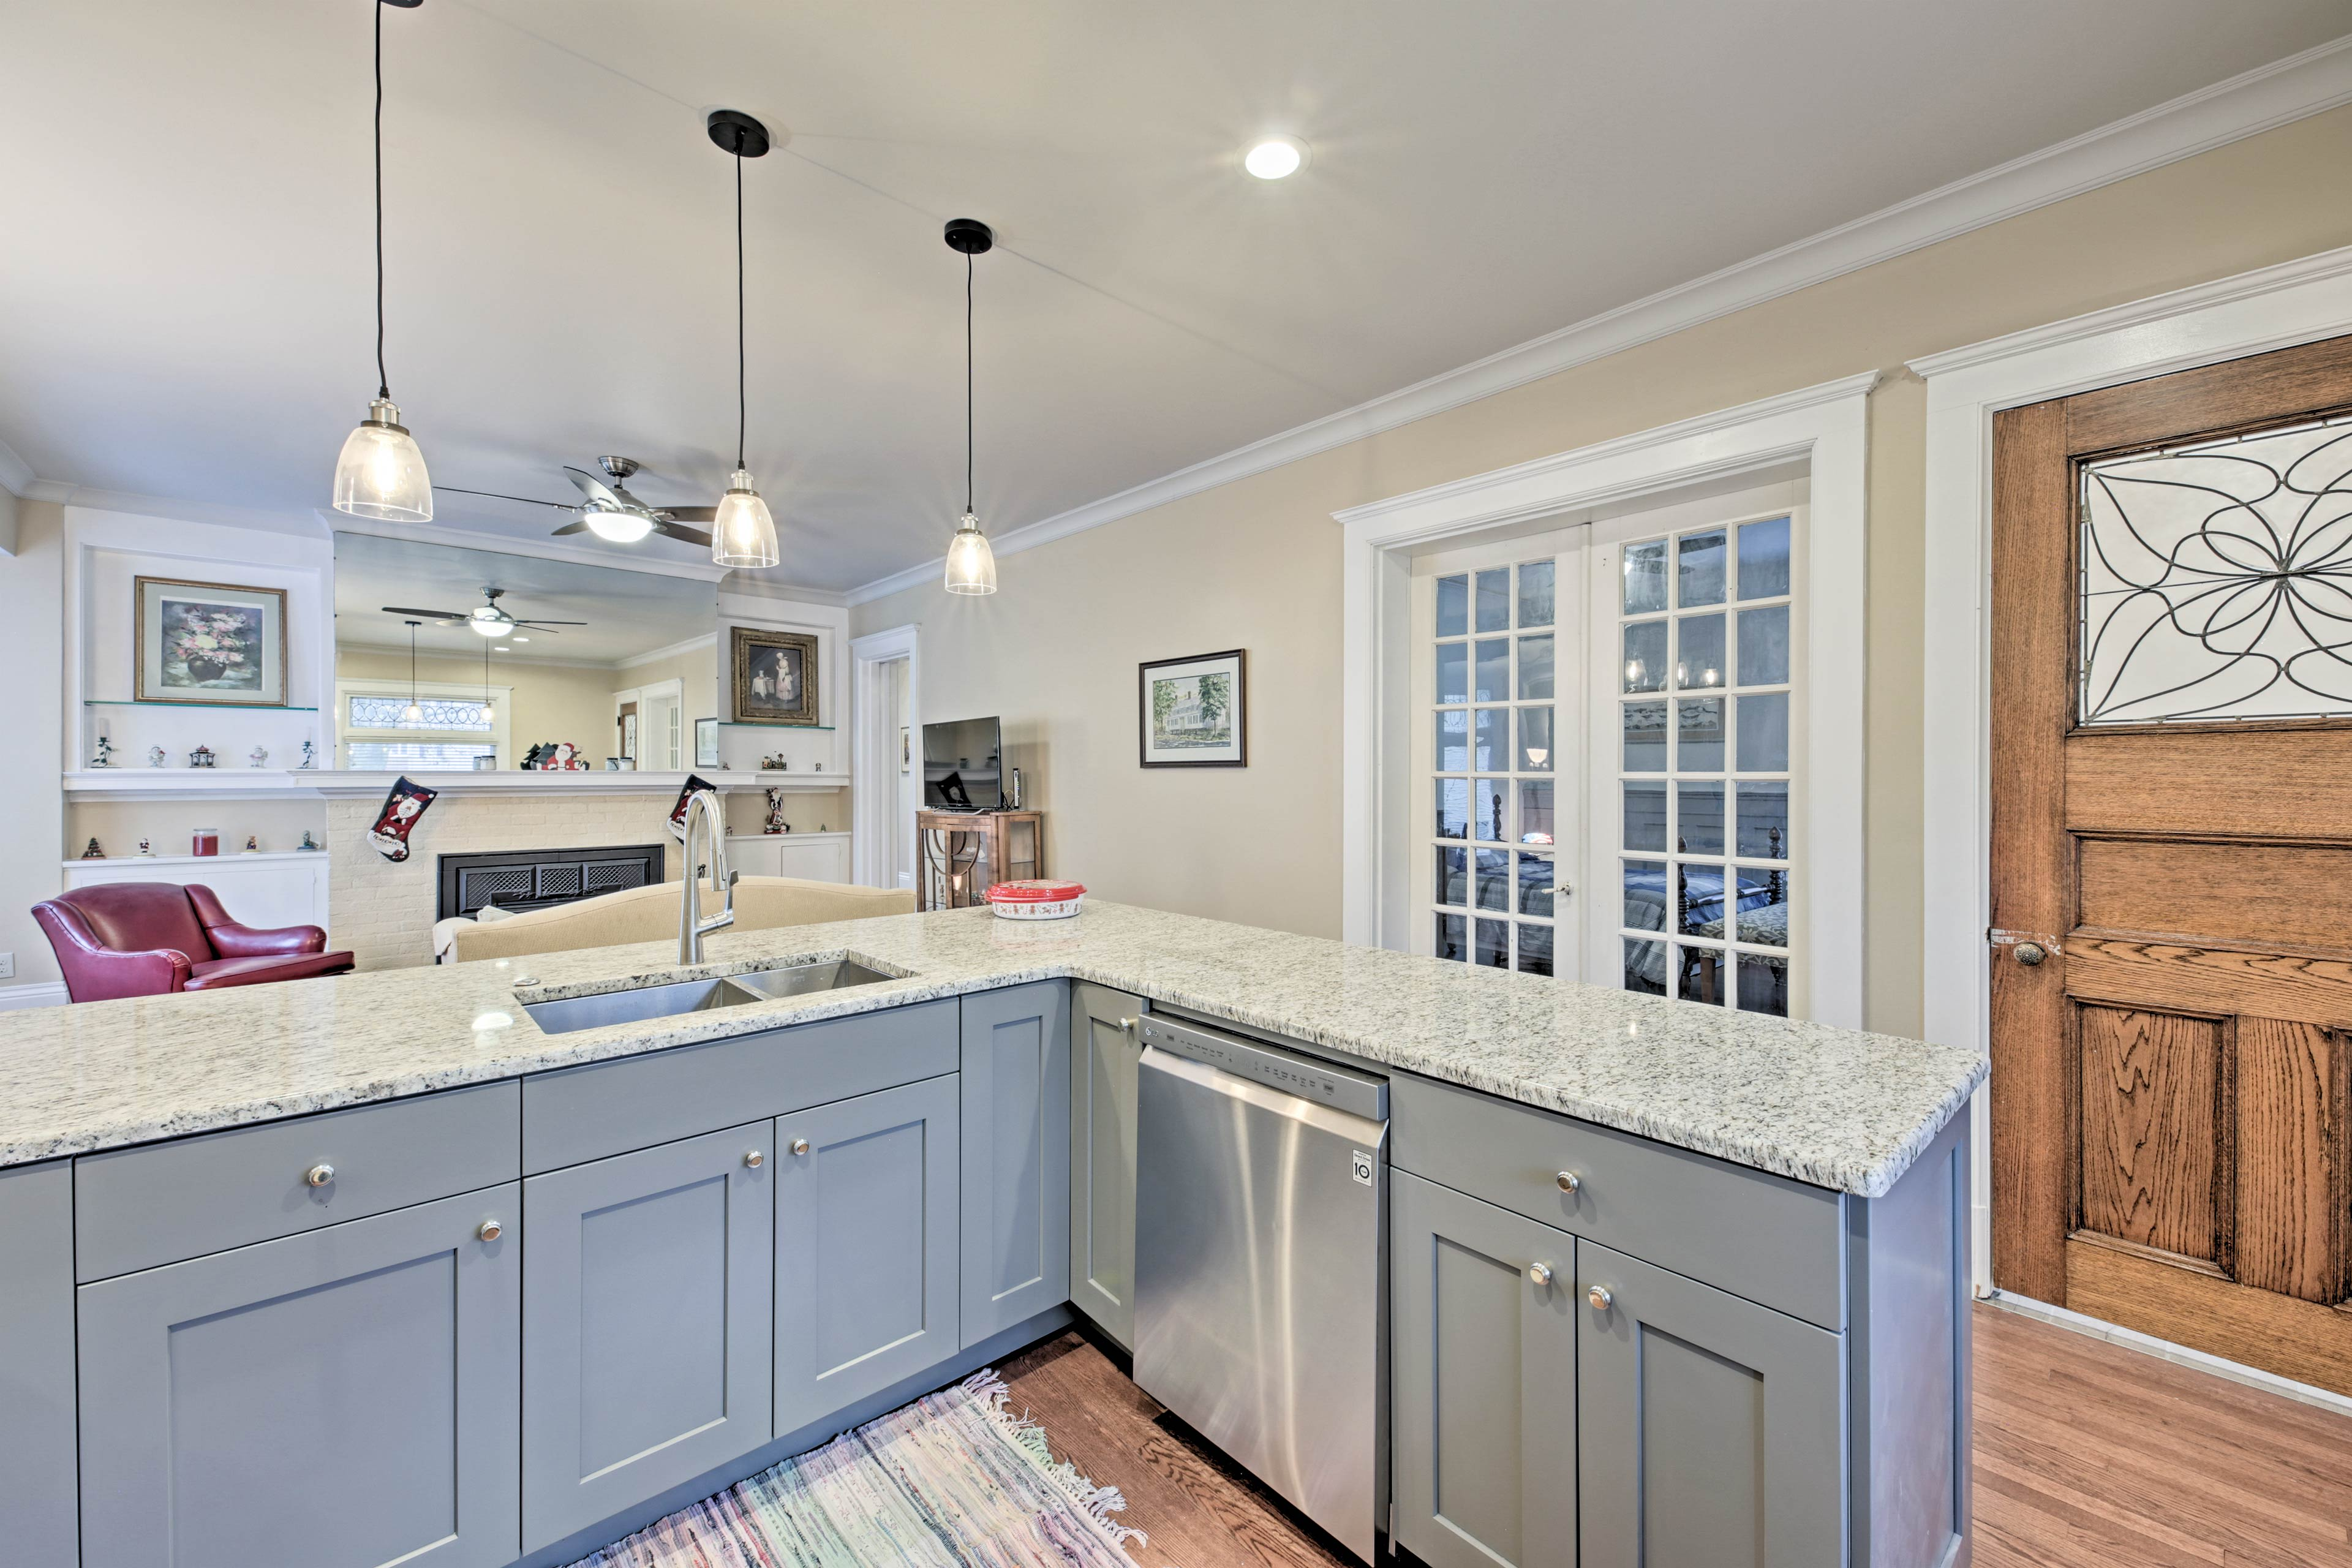 The L-shaped granite counter top provides plenty of space for meal preparation.